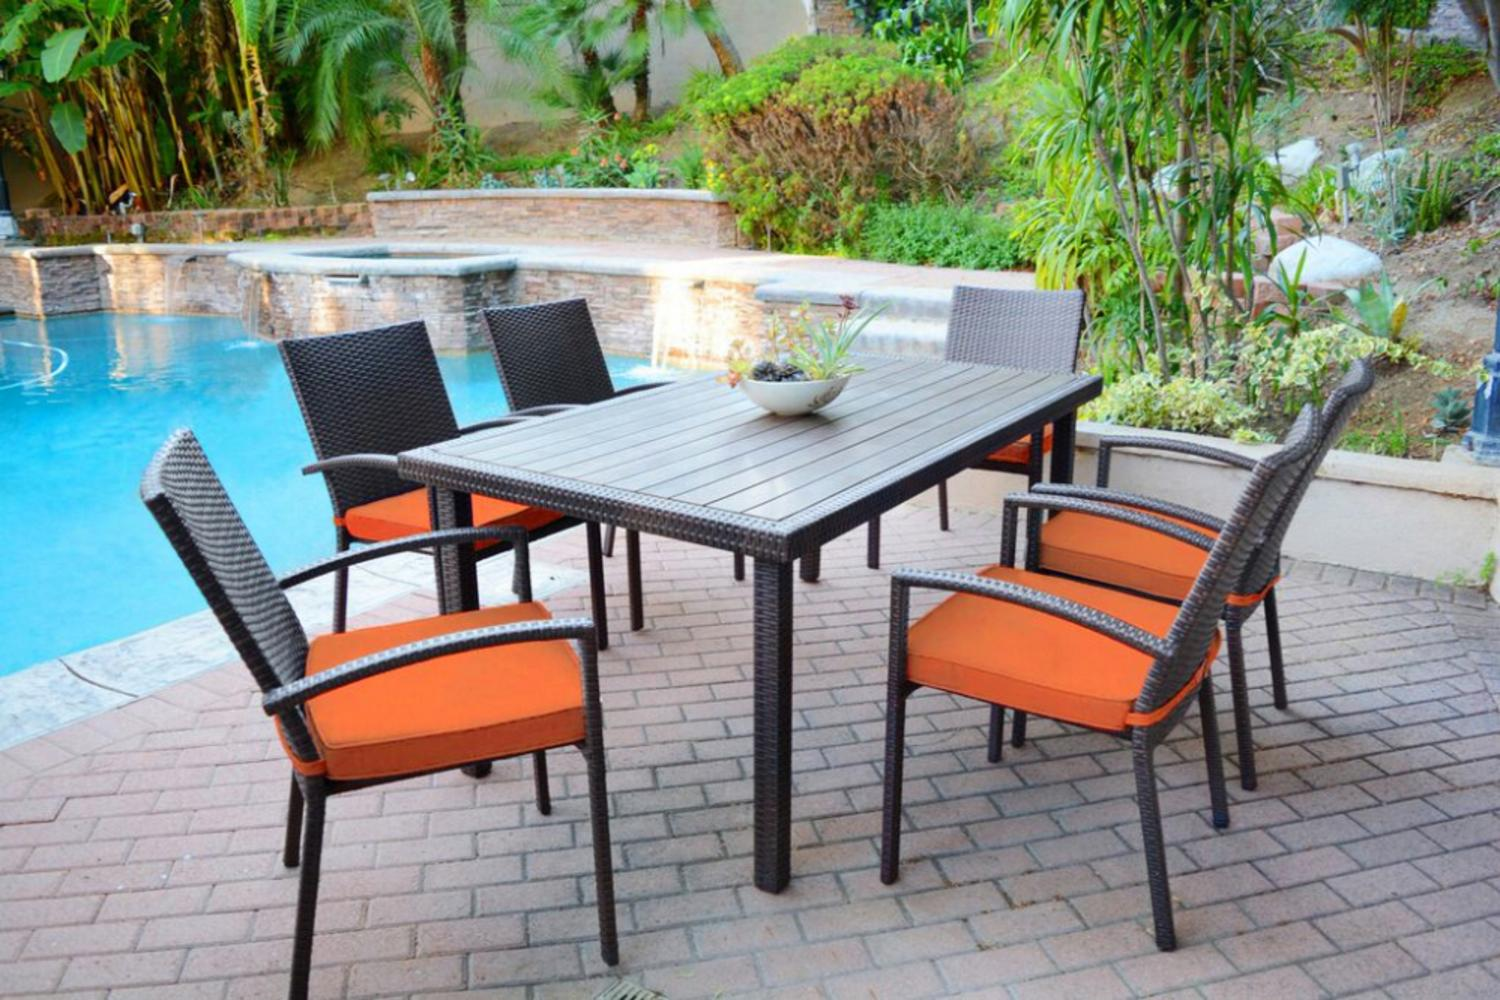 7-Piece Espresso Resin Wicker Outdoor Table and Chairs Furniture Set Orange Cushions by CC Outdoor Living